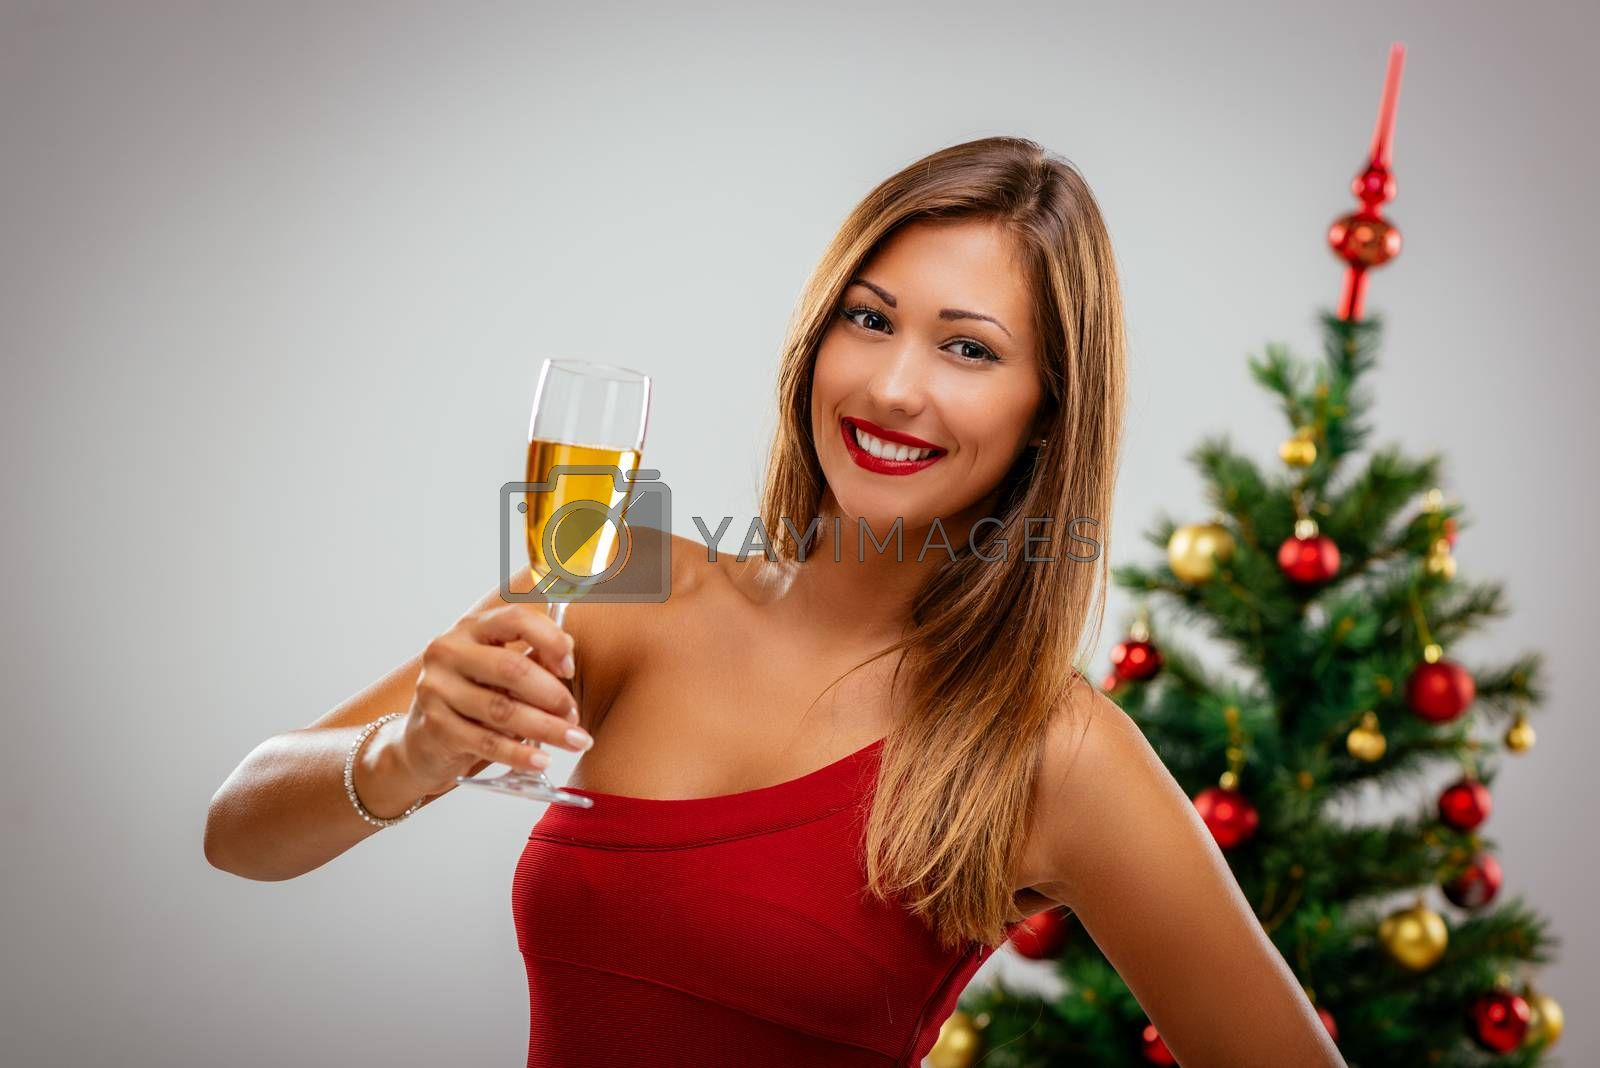 Beautiful young smiling woman in red dress toasting with champagne. Looking at camera.